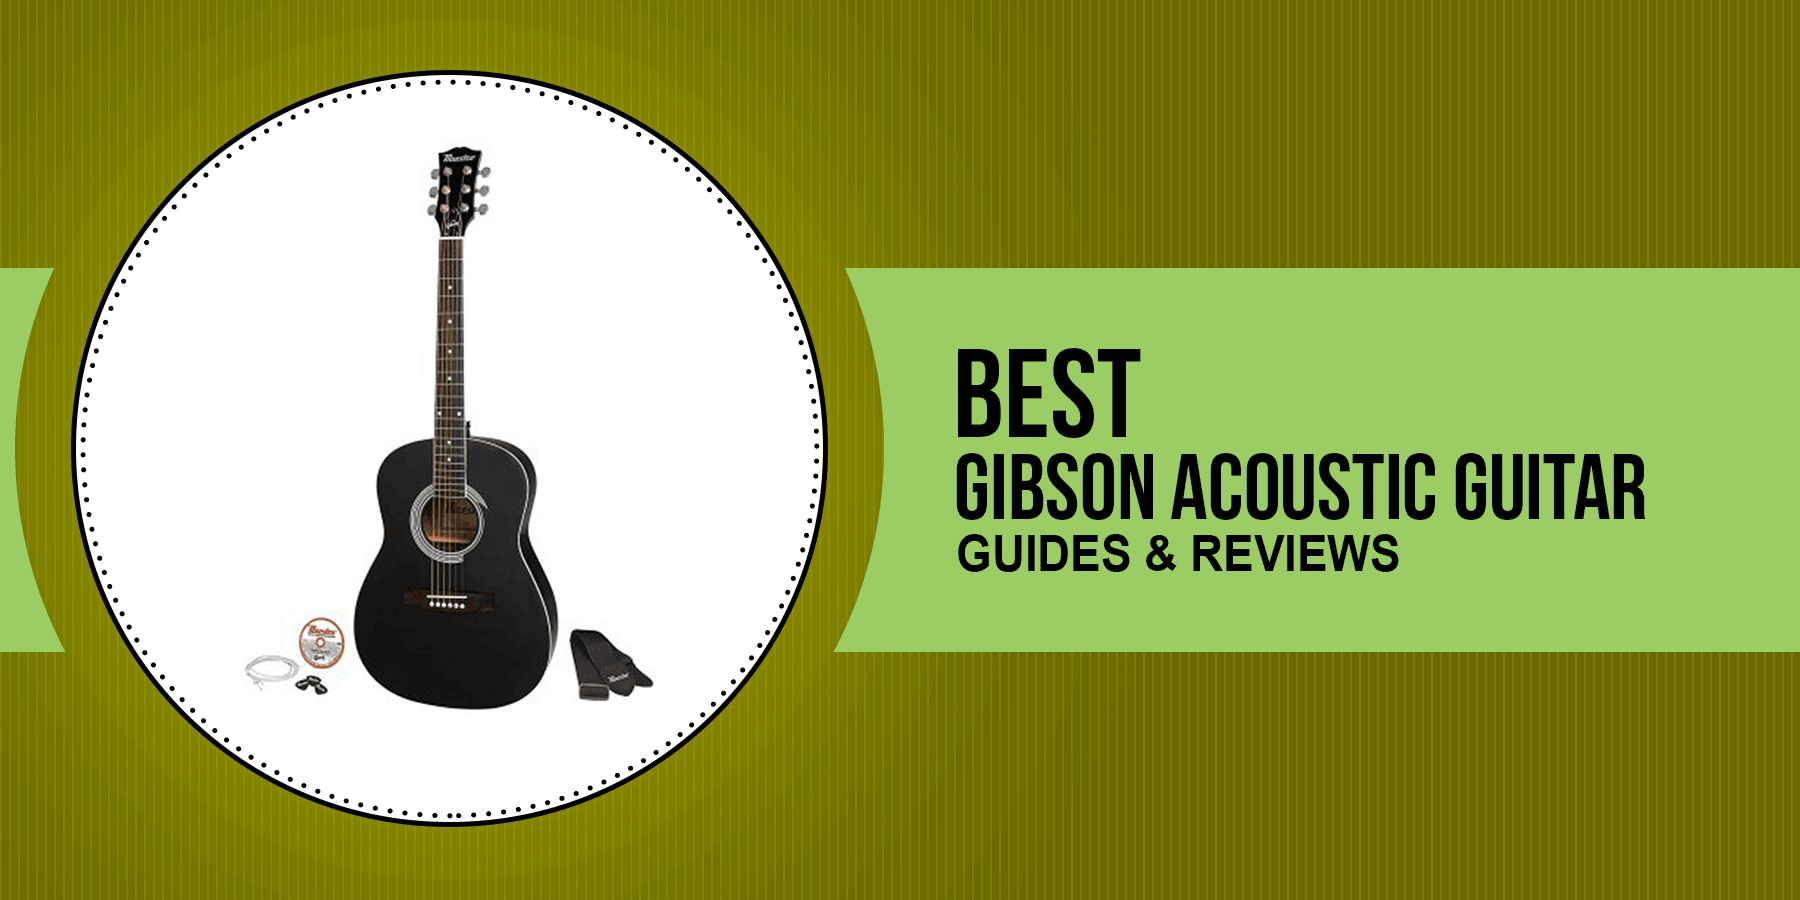 Best Gibson Acoustic Guitar